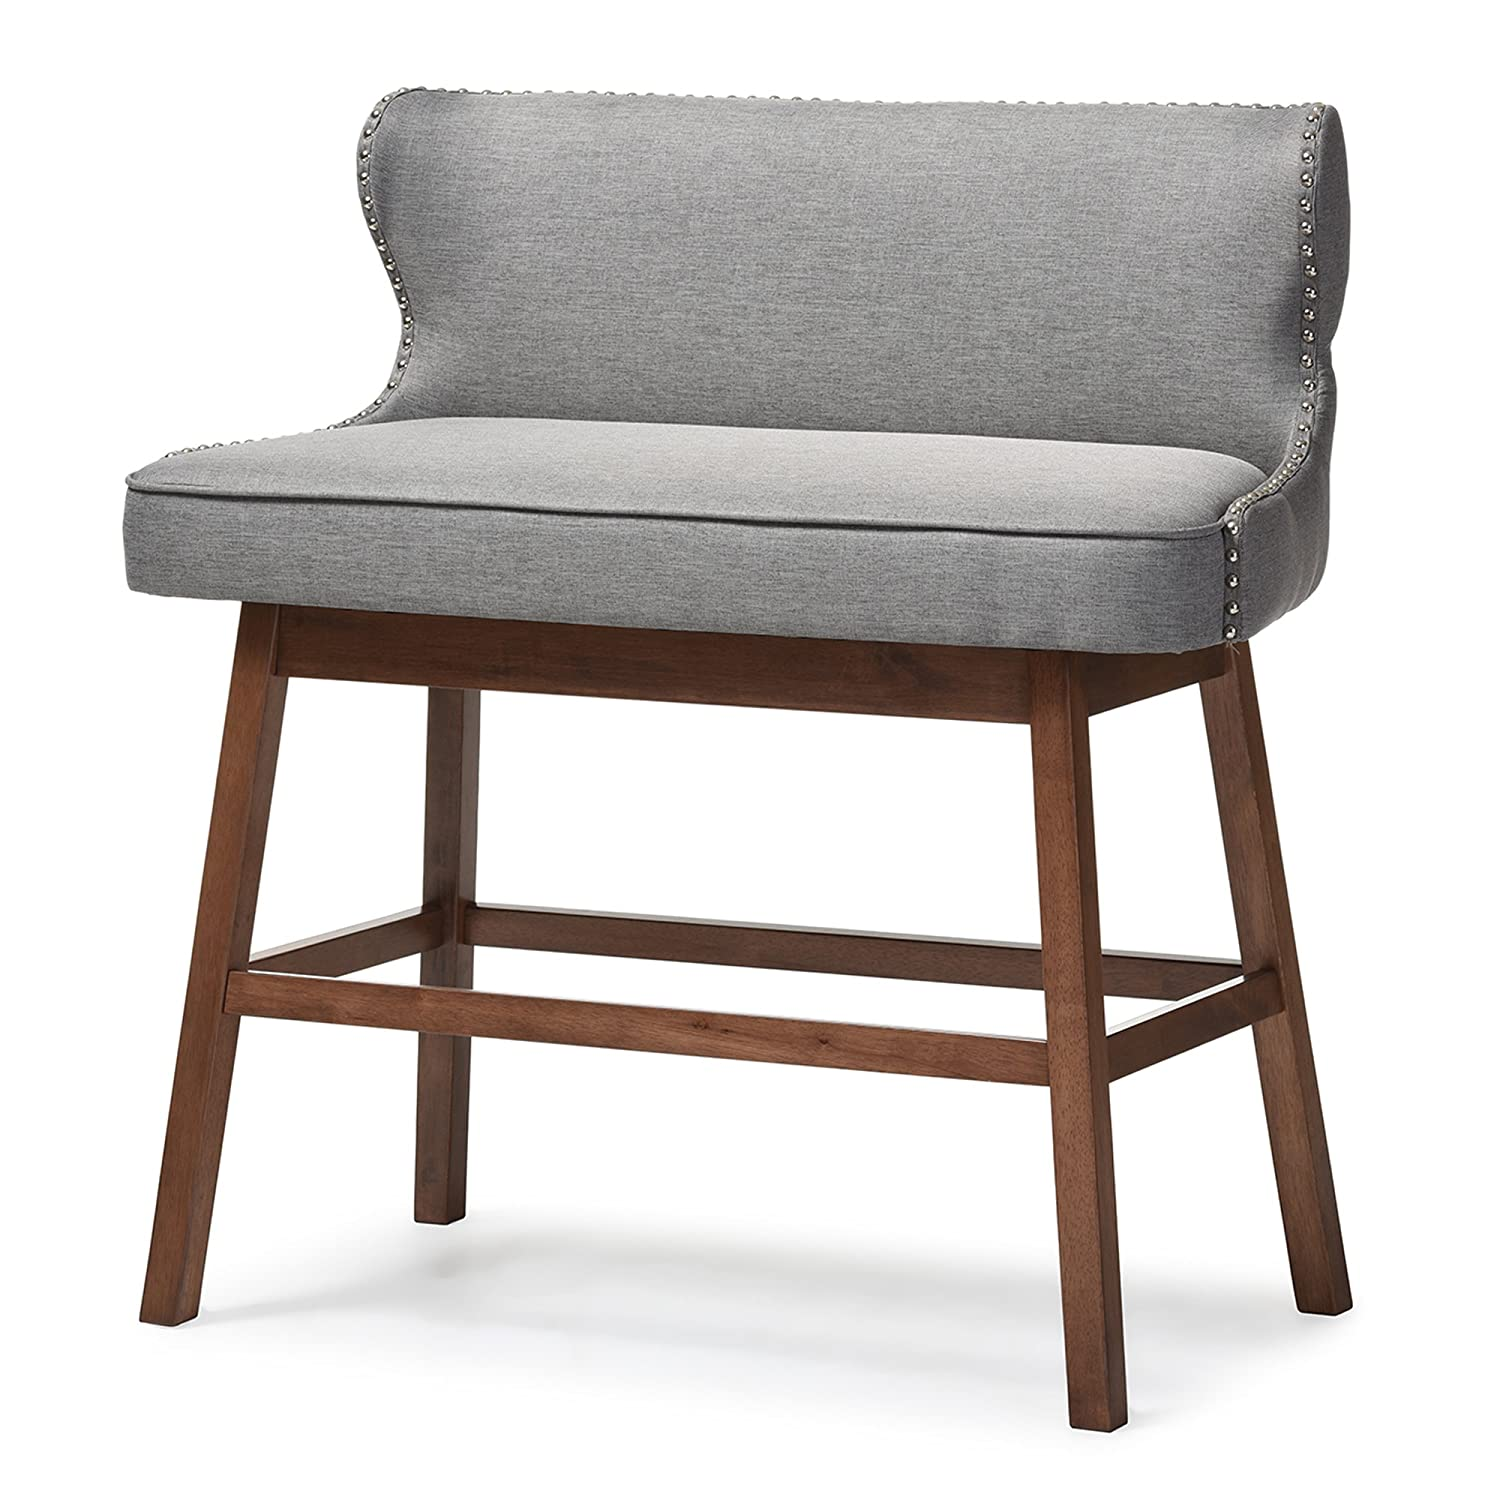 Baxton Studio Gradisca Modern U0026 Contemporary Fabric Button Tufted  Upholstered Banquette Bar Bench, ...